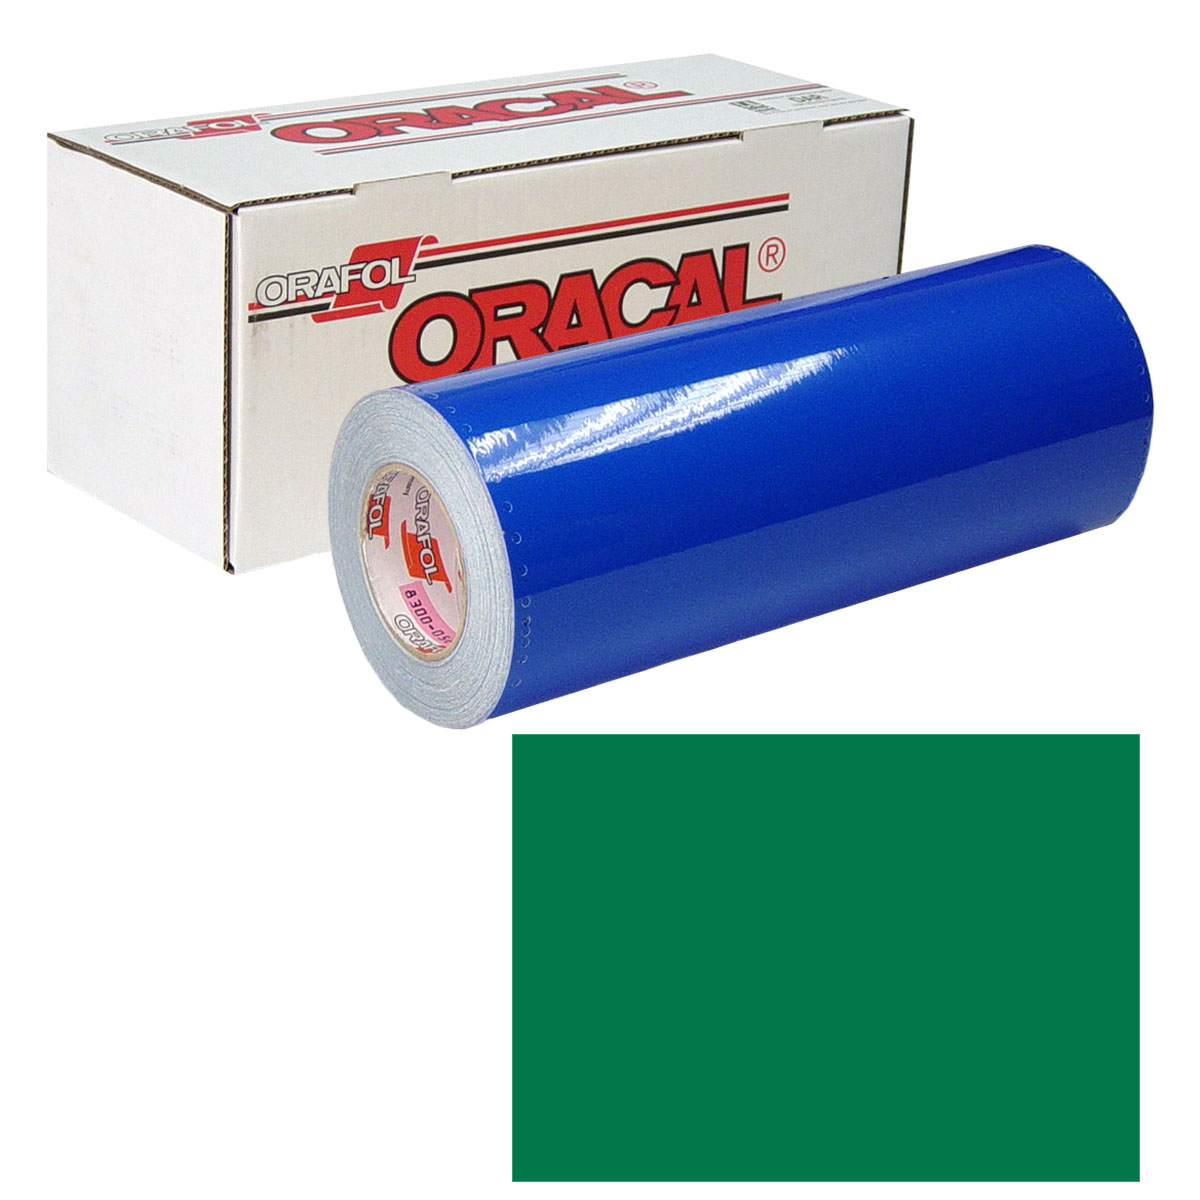 ORACAL 631 Unp 24in X 10yd 061 Green